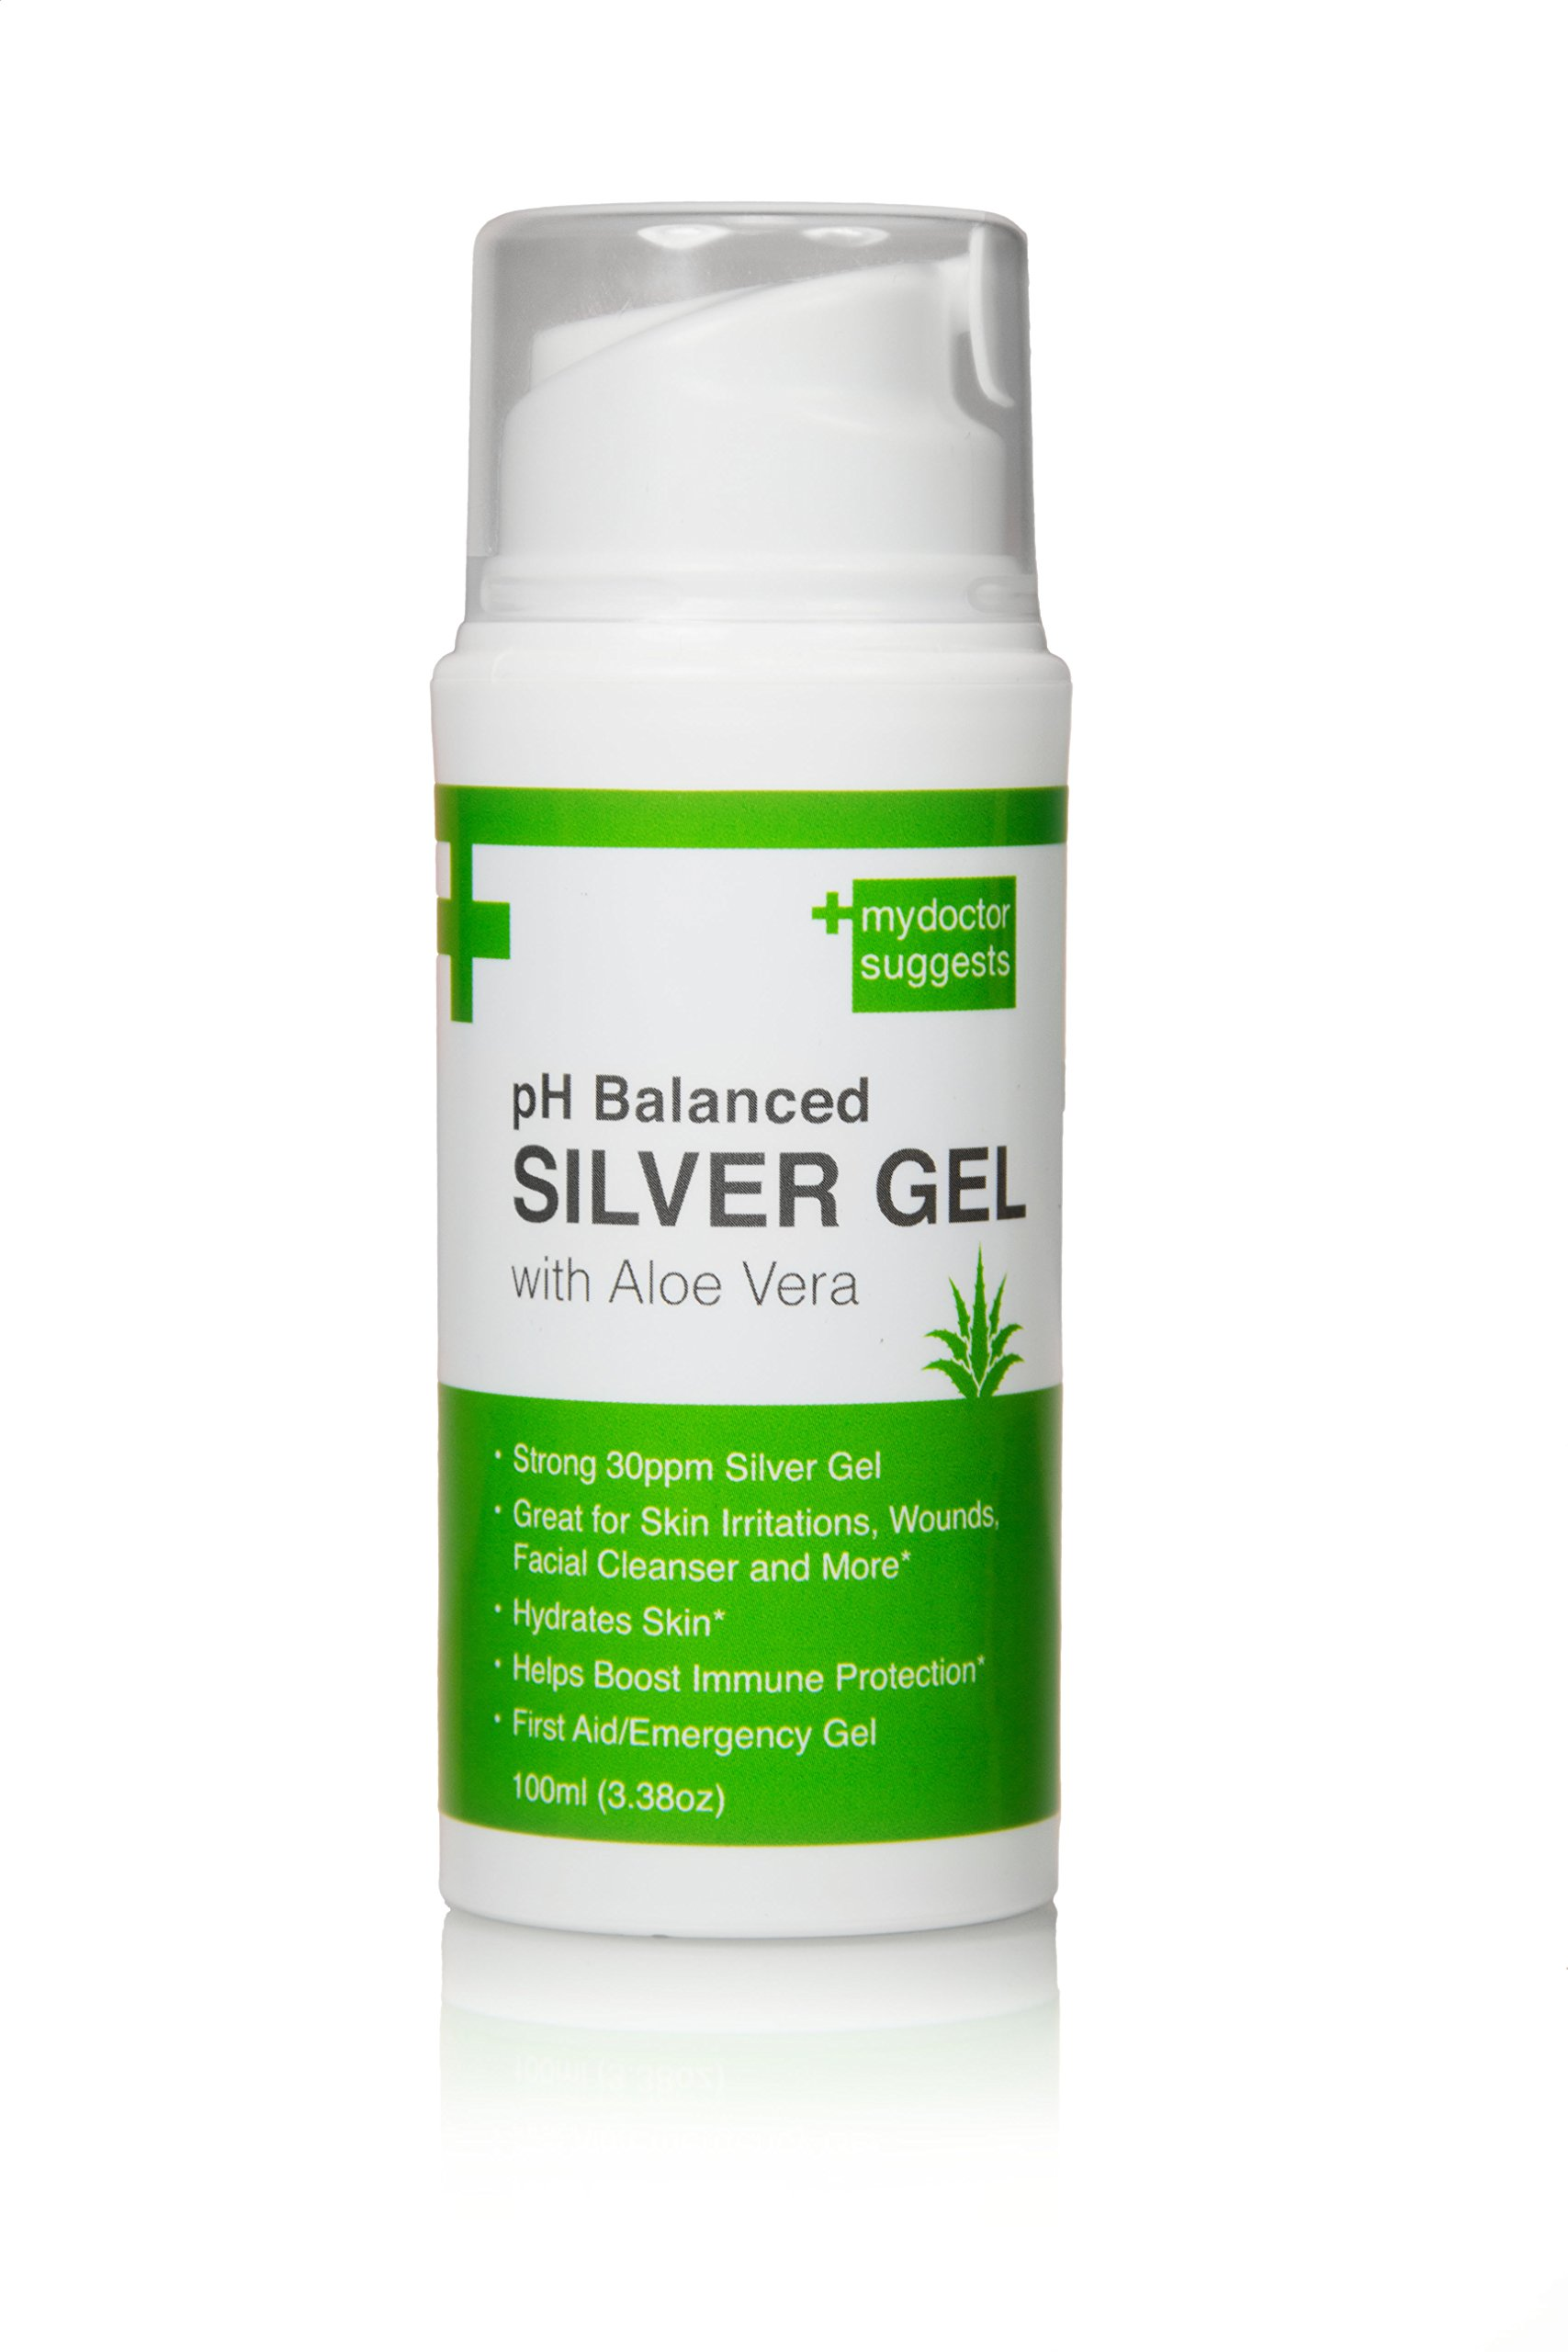 First Aid Silver Gel: pH Balanced Silver Gel with Aloe Vera - Strong 30ppm Silver Gel in a 3.38oz Easy Pump Container: Use for Cuts, Scrapes, Burns, Wound Care and More (1)